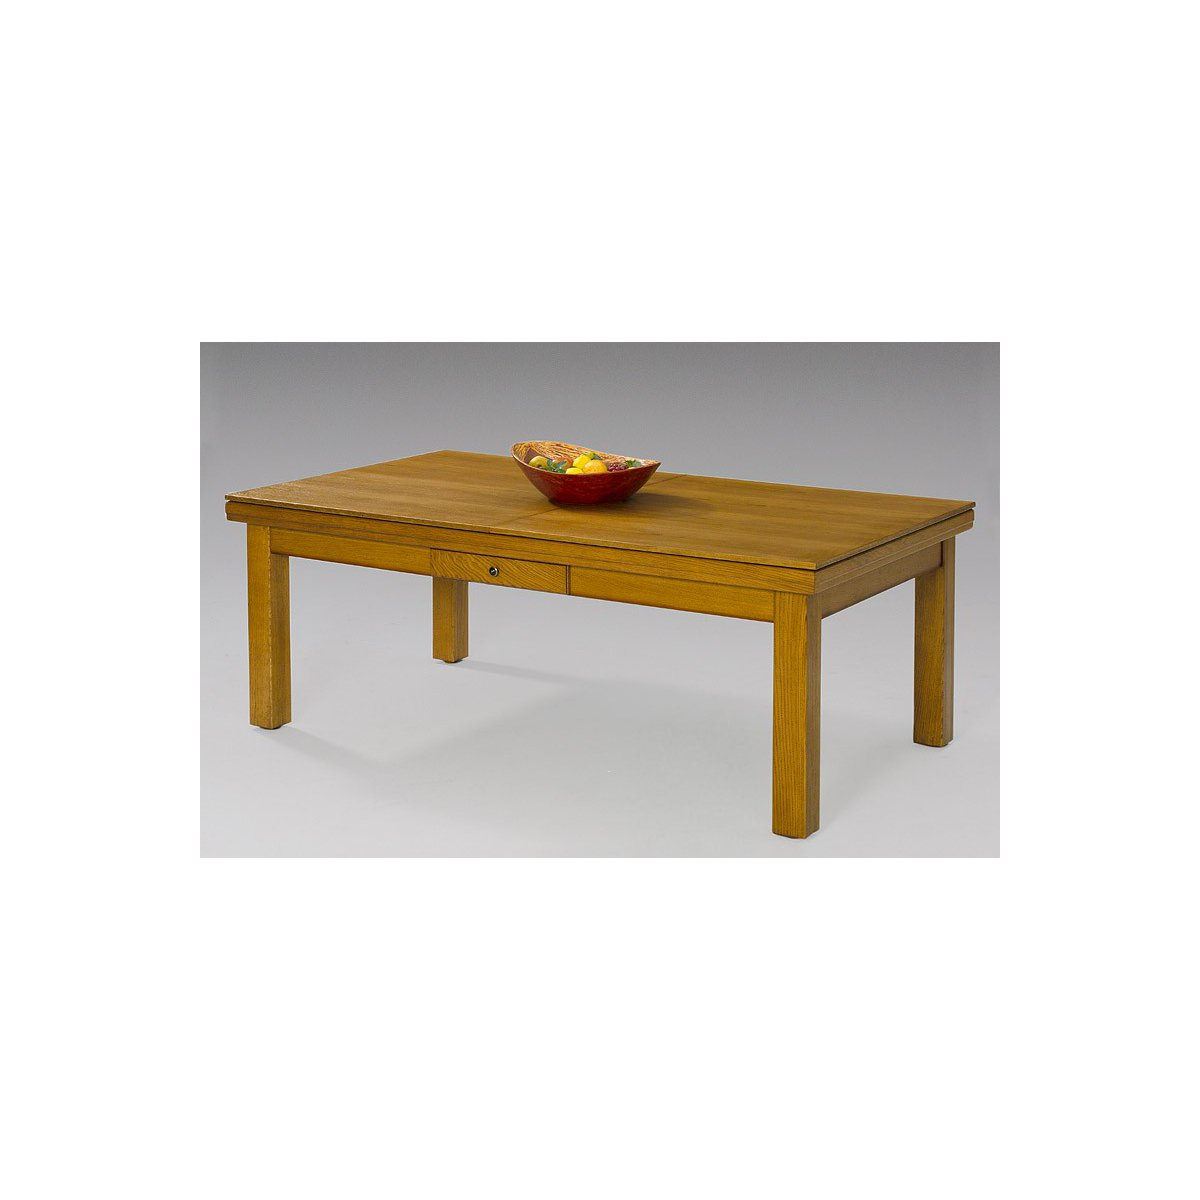 Table billard convertible florence de luxe for Table billard convertible belgique